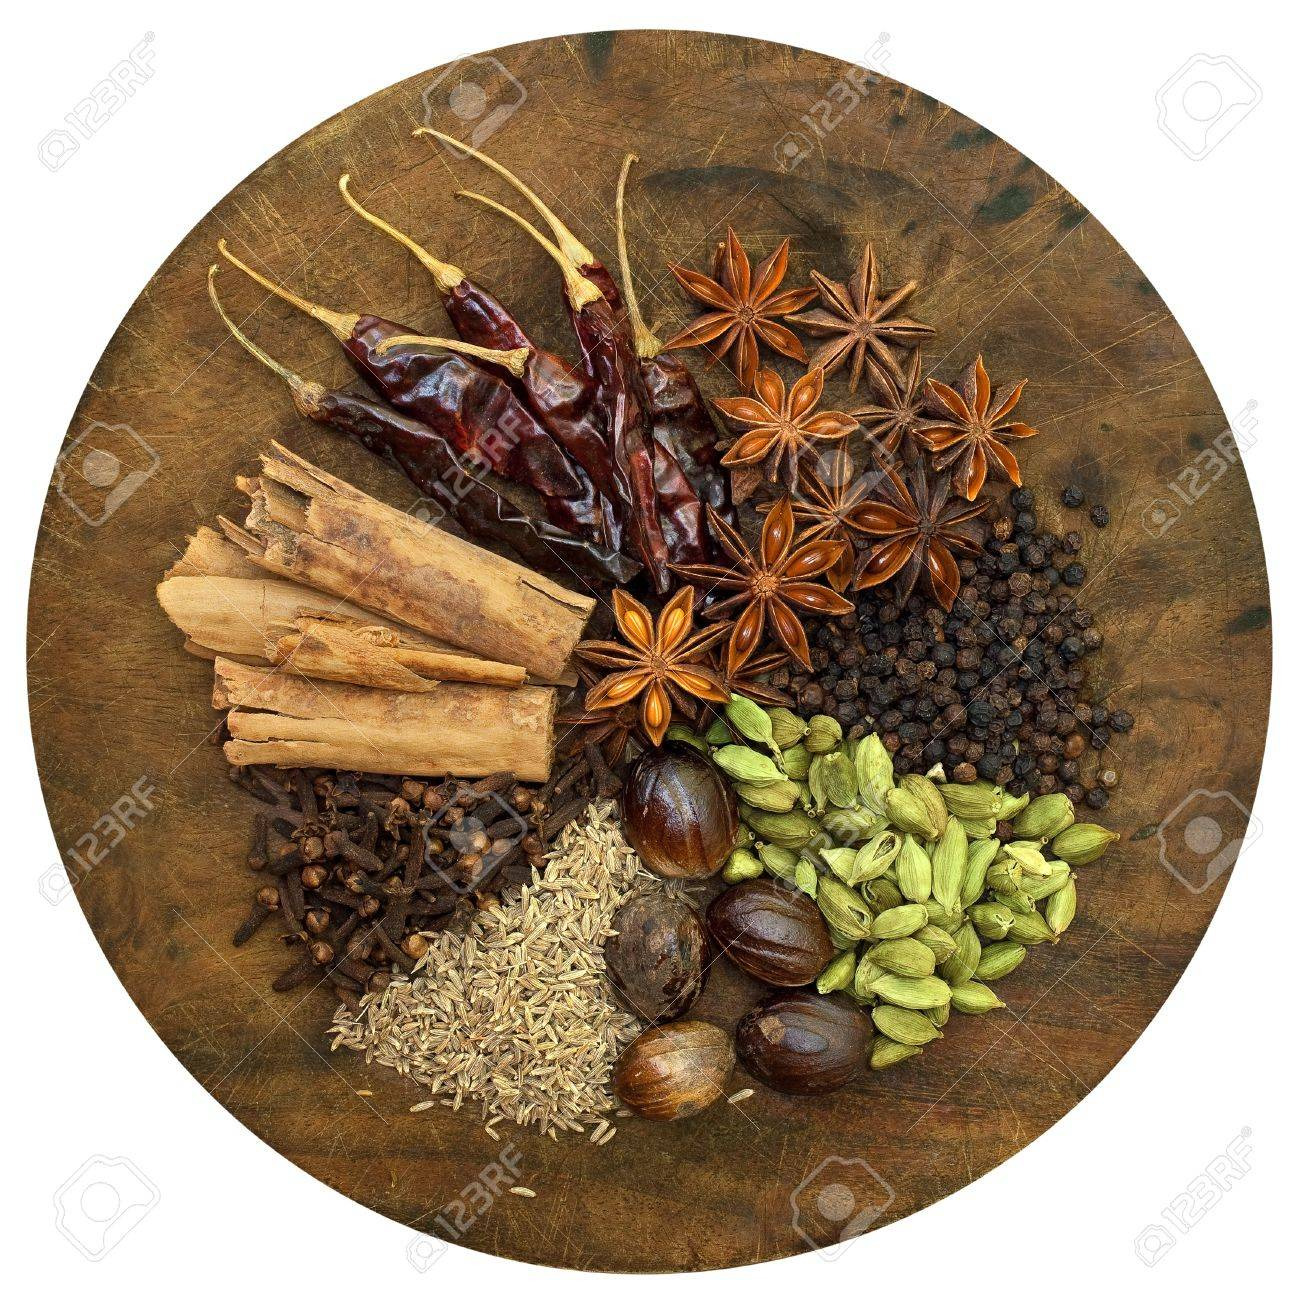 Image of Mixed Spices on a Wooden Chopping Board Stock Photo - 11139412